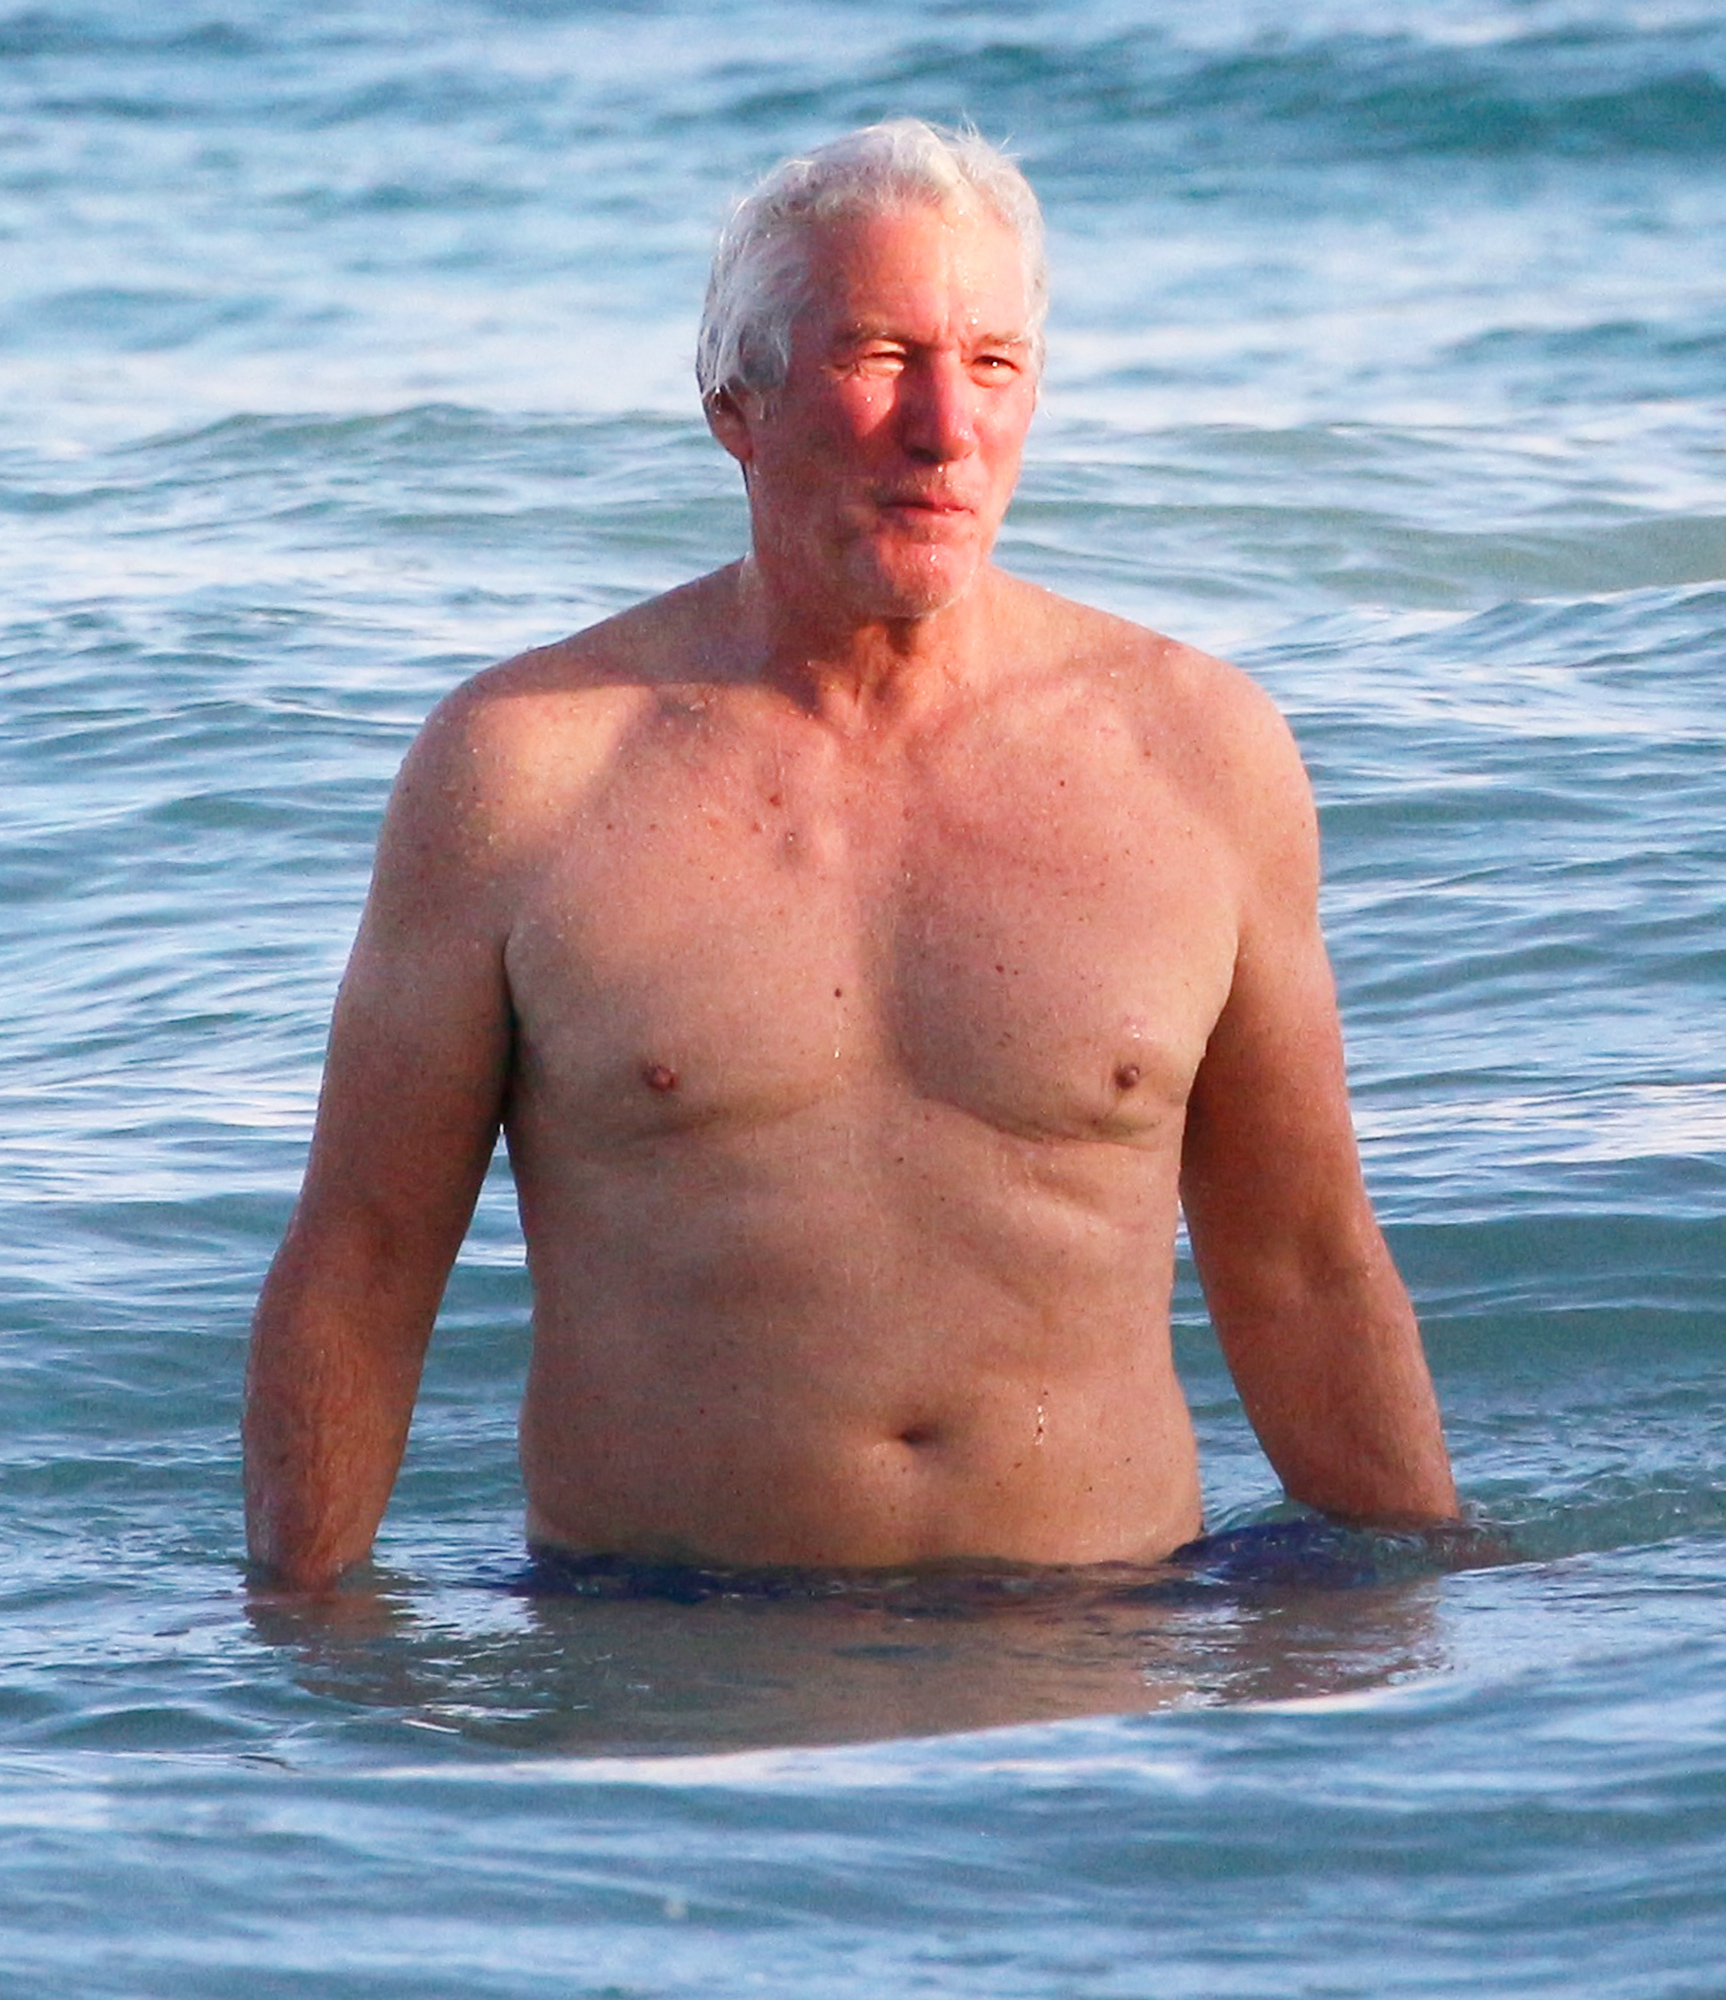 EXCLUSIVE: Richard Gere takes a dip in the ocean during his festive Mexican vacation